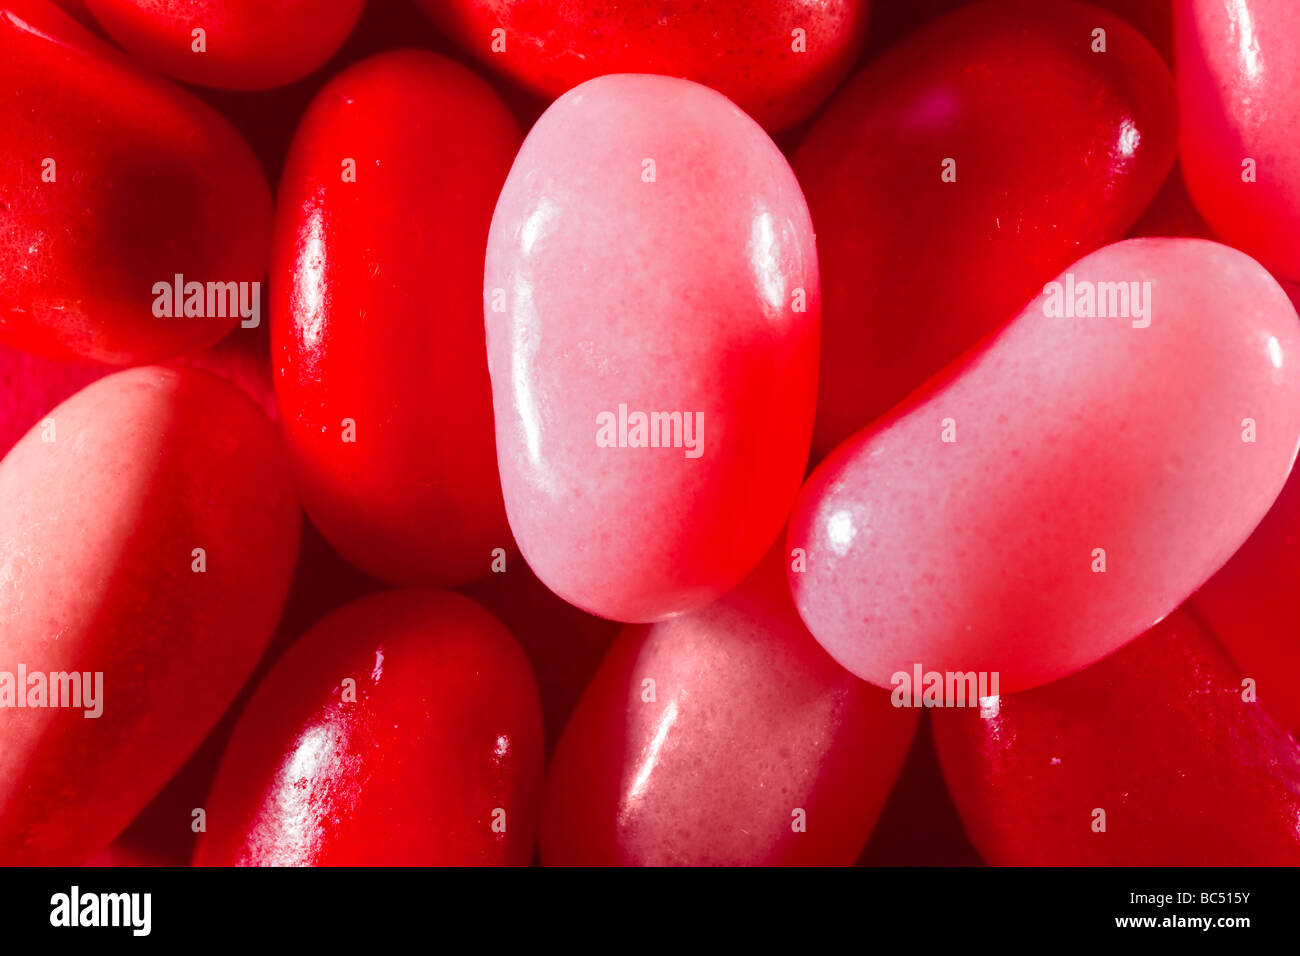 Red and pink jelly beans captured in 16 bit and provided in Adobe1998 color space to hold difficult red tones - Stock Image